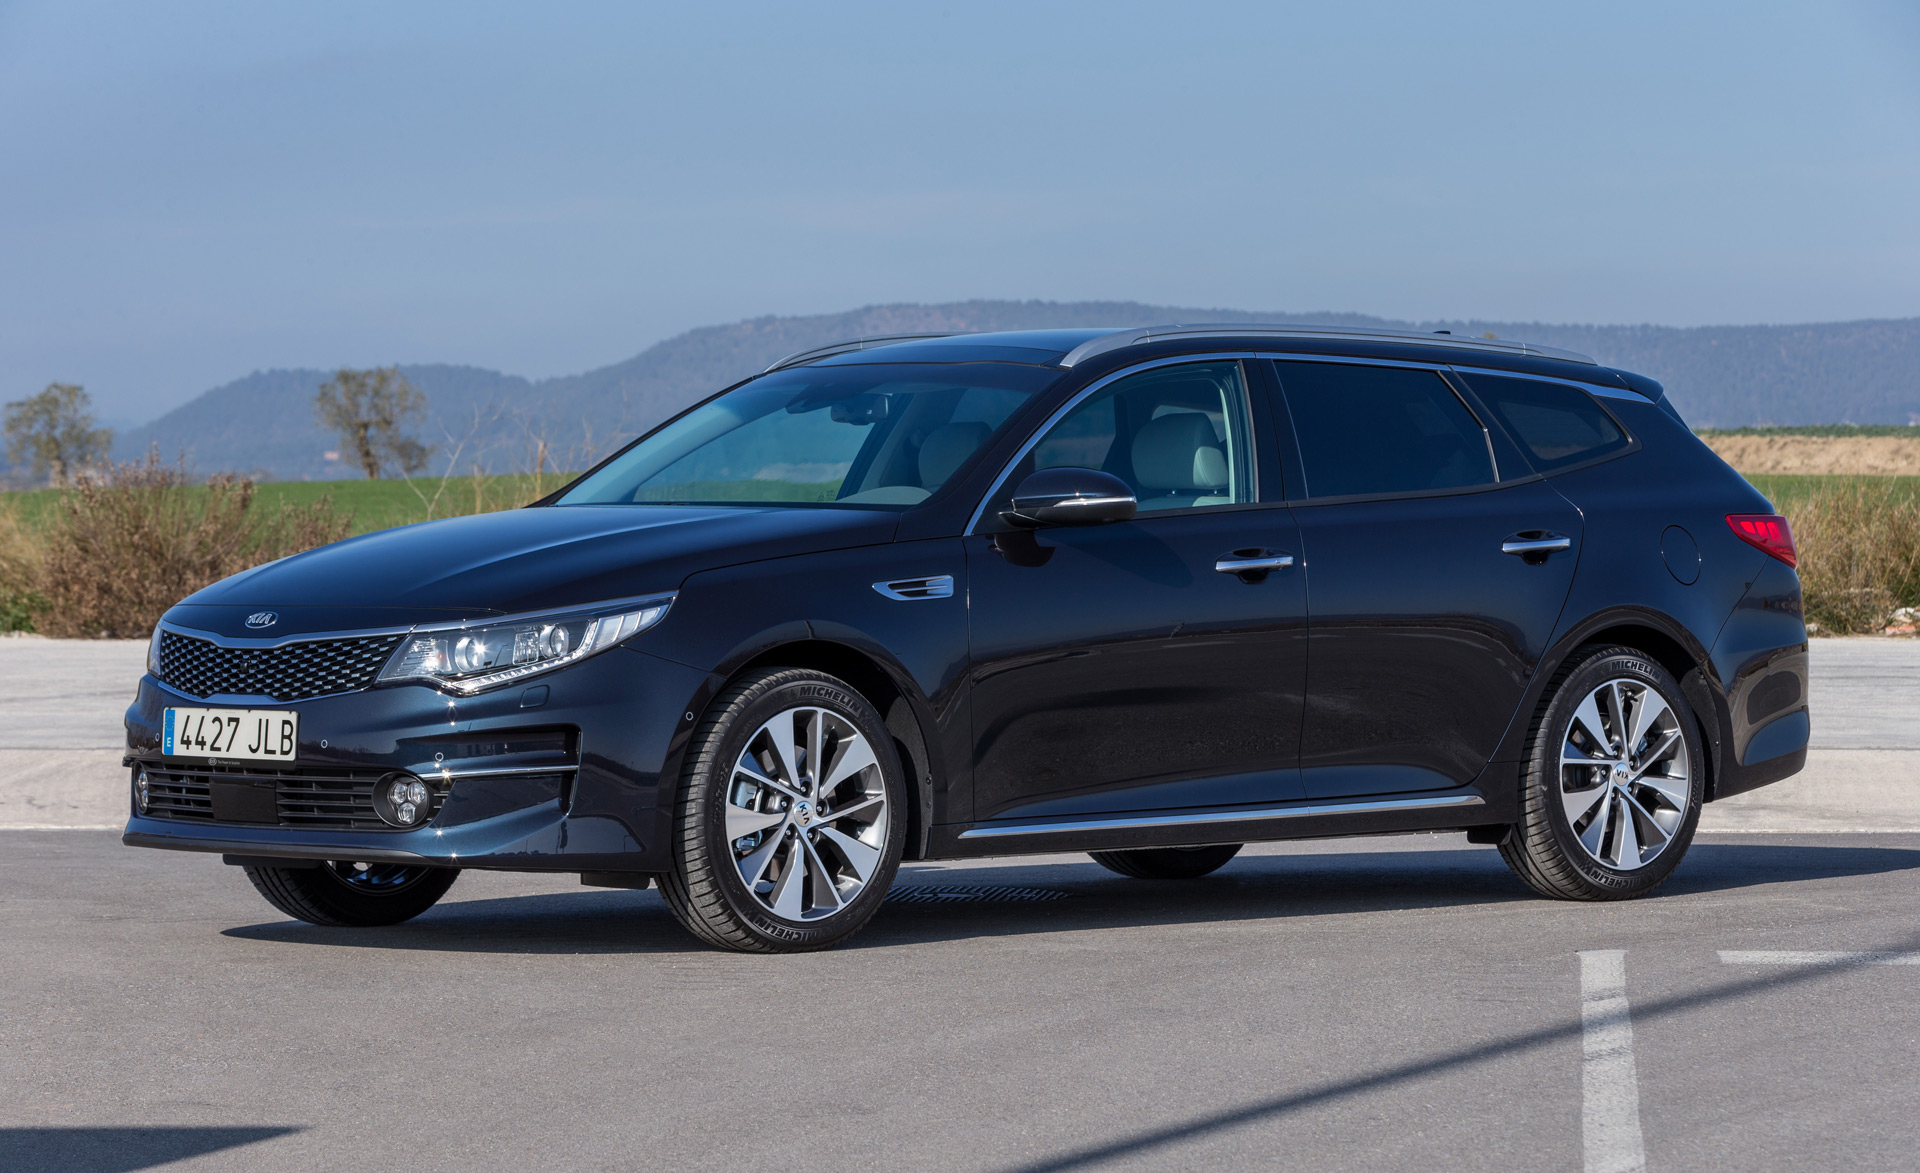 2016 kia optima sportswagon revealed ahead of geneva debut. Black Bedroom Furniture Sets. Home Design Ideas